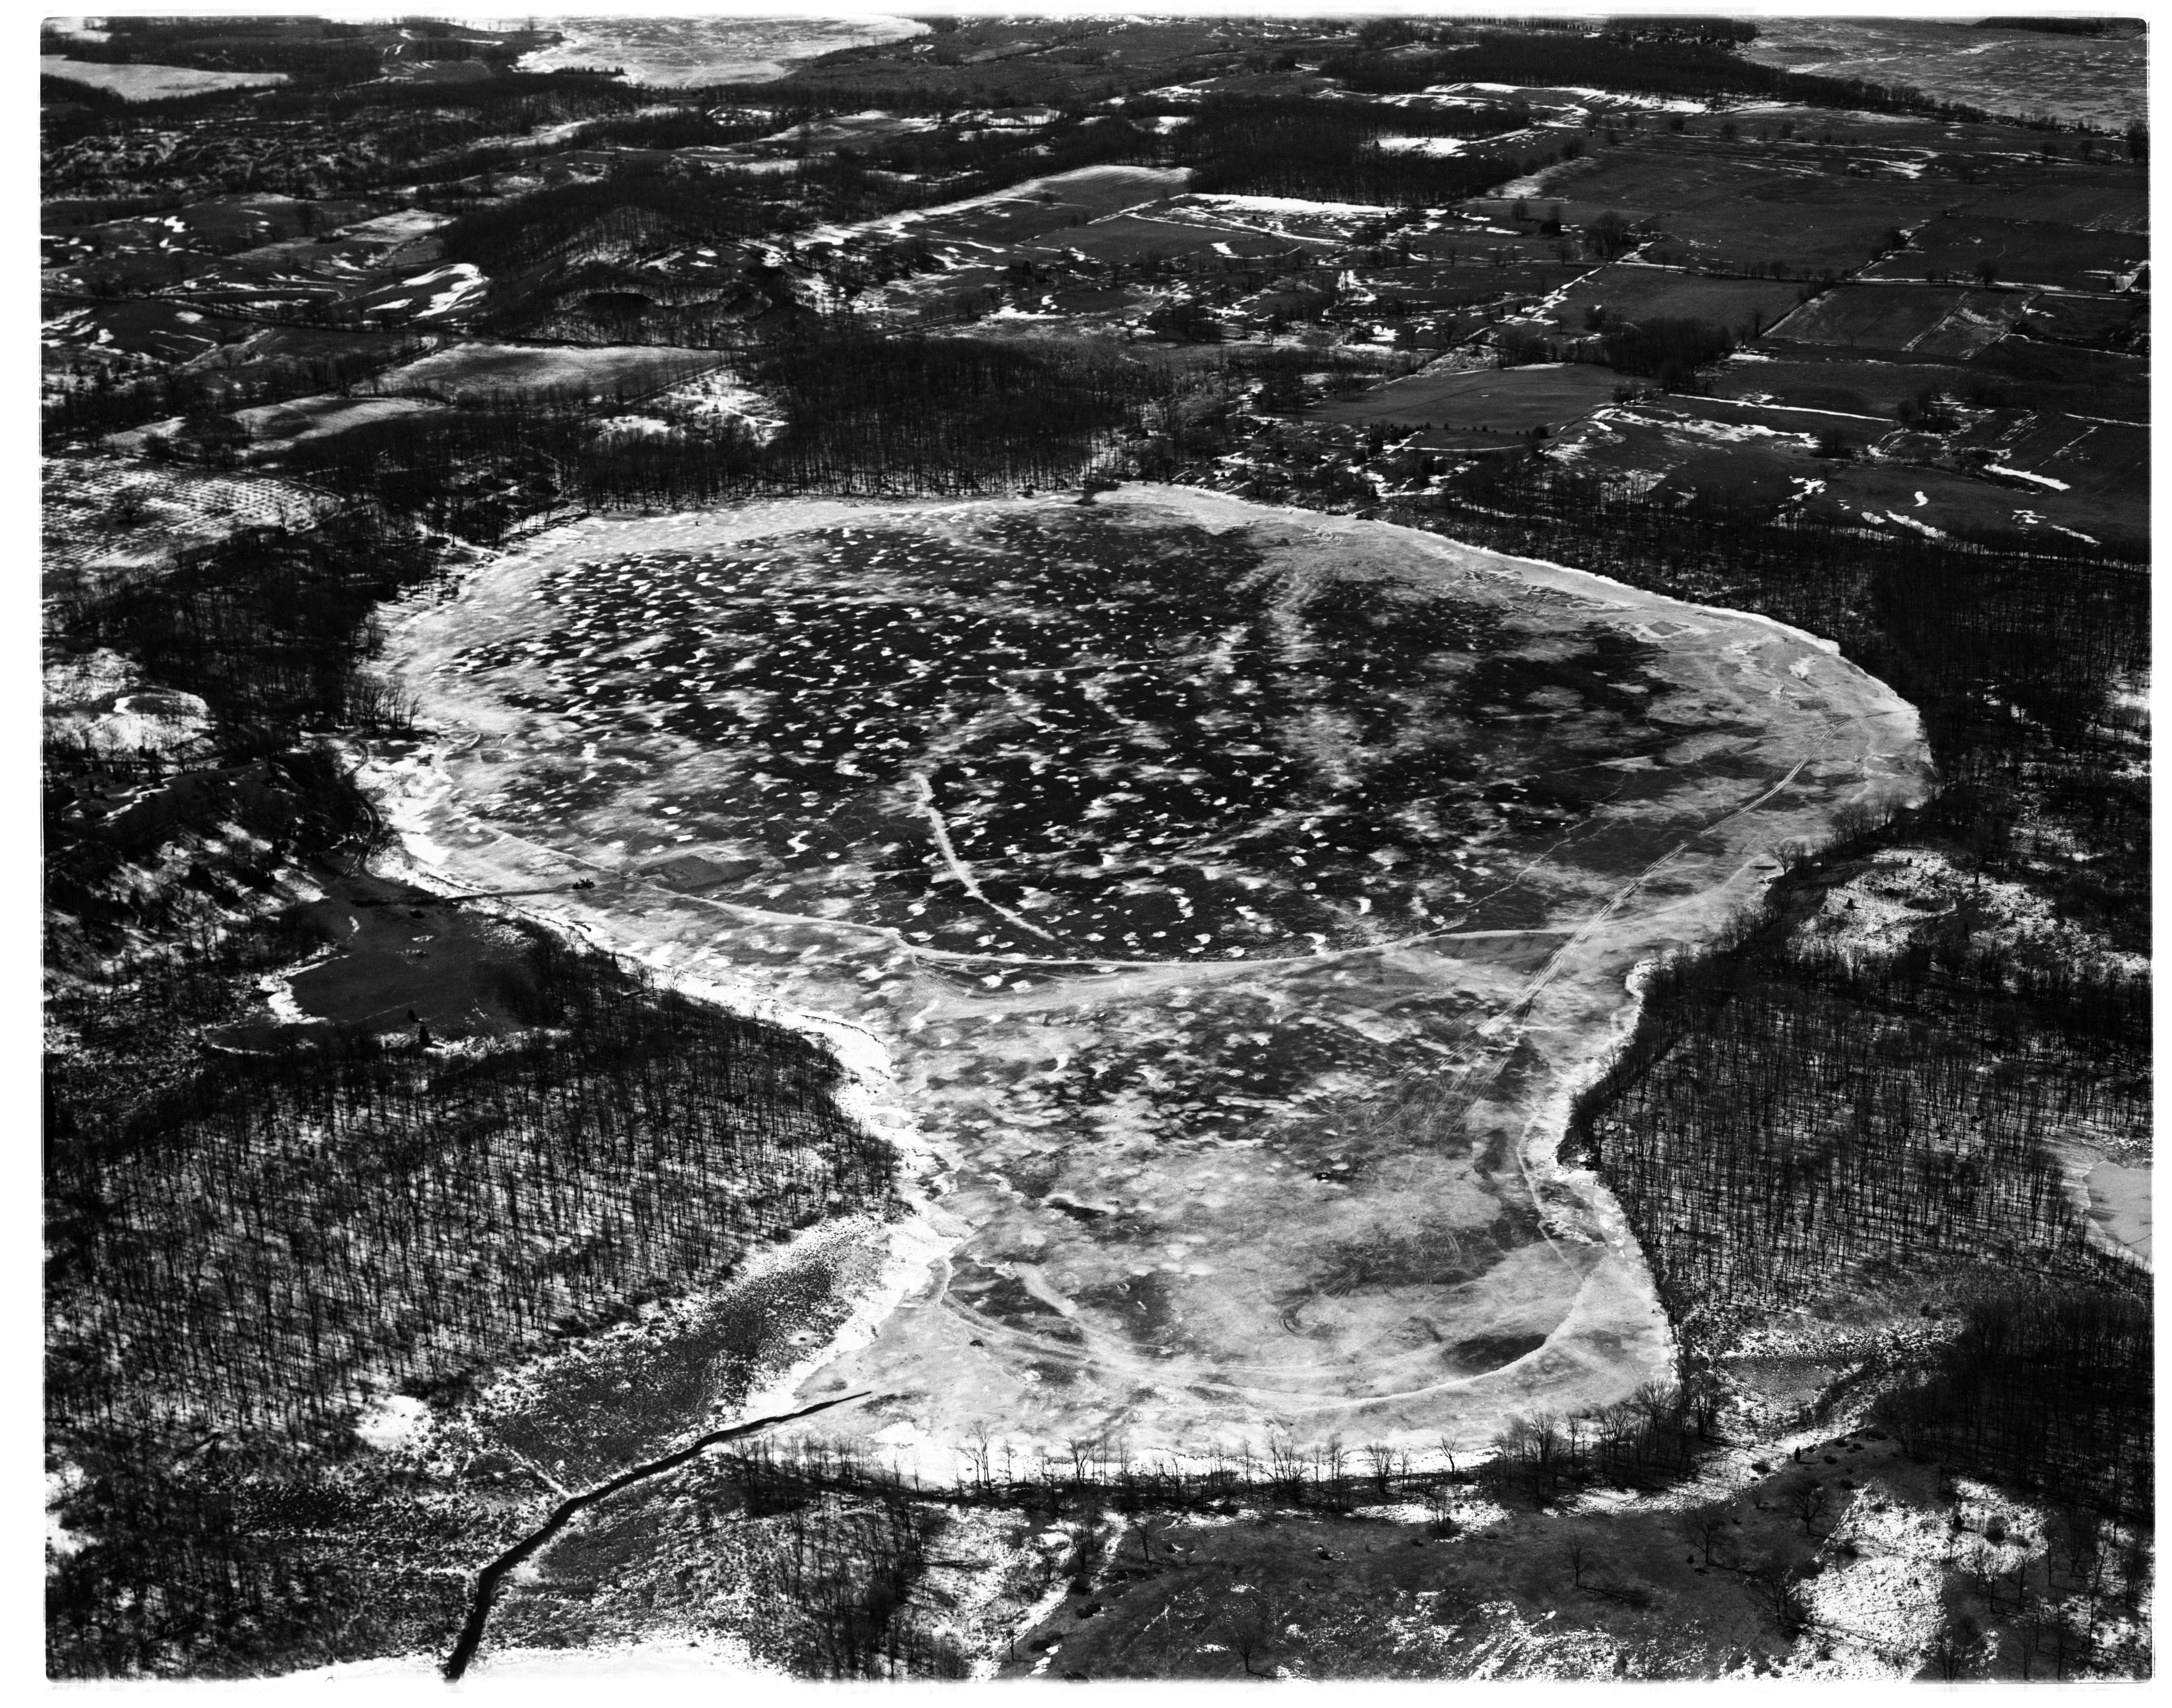 Aerial Photograph of Pinckney Recreation Area's Bruin Lake, February 1958 image